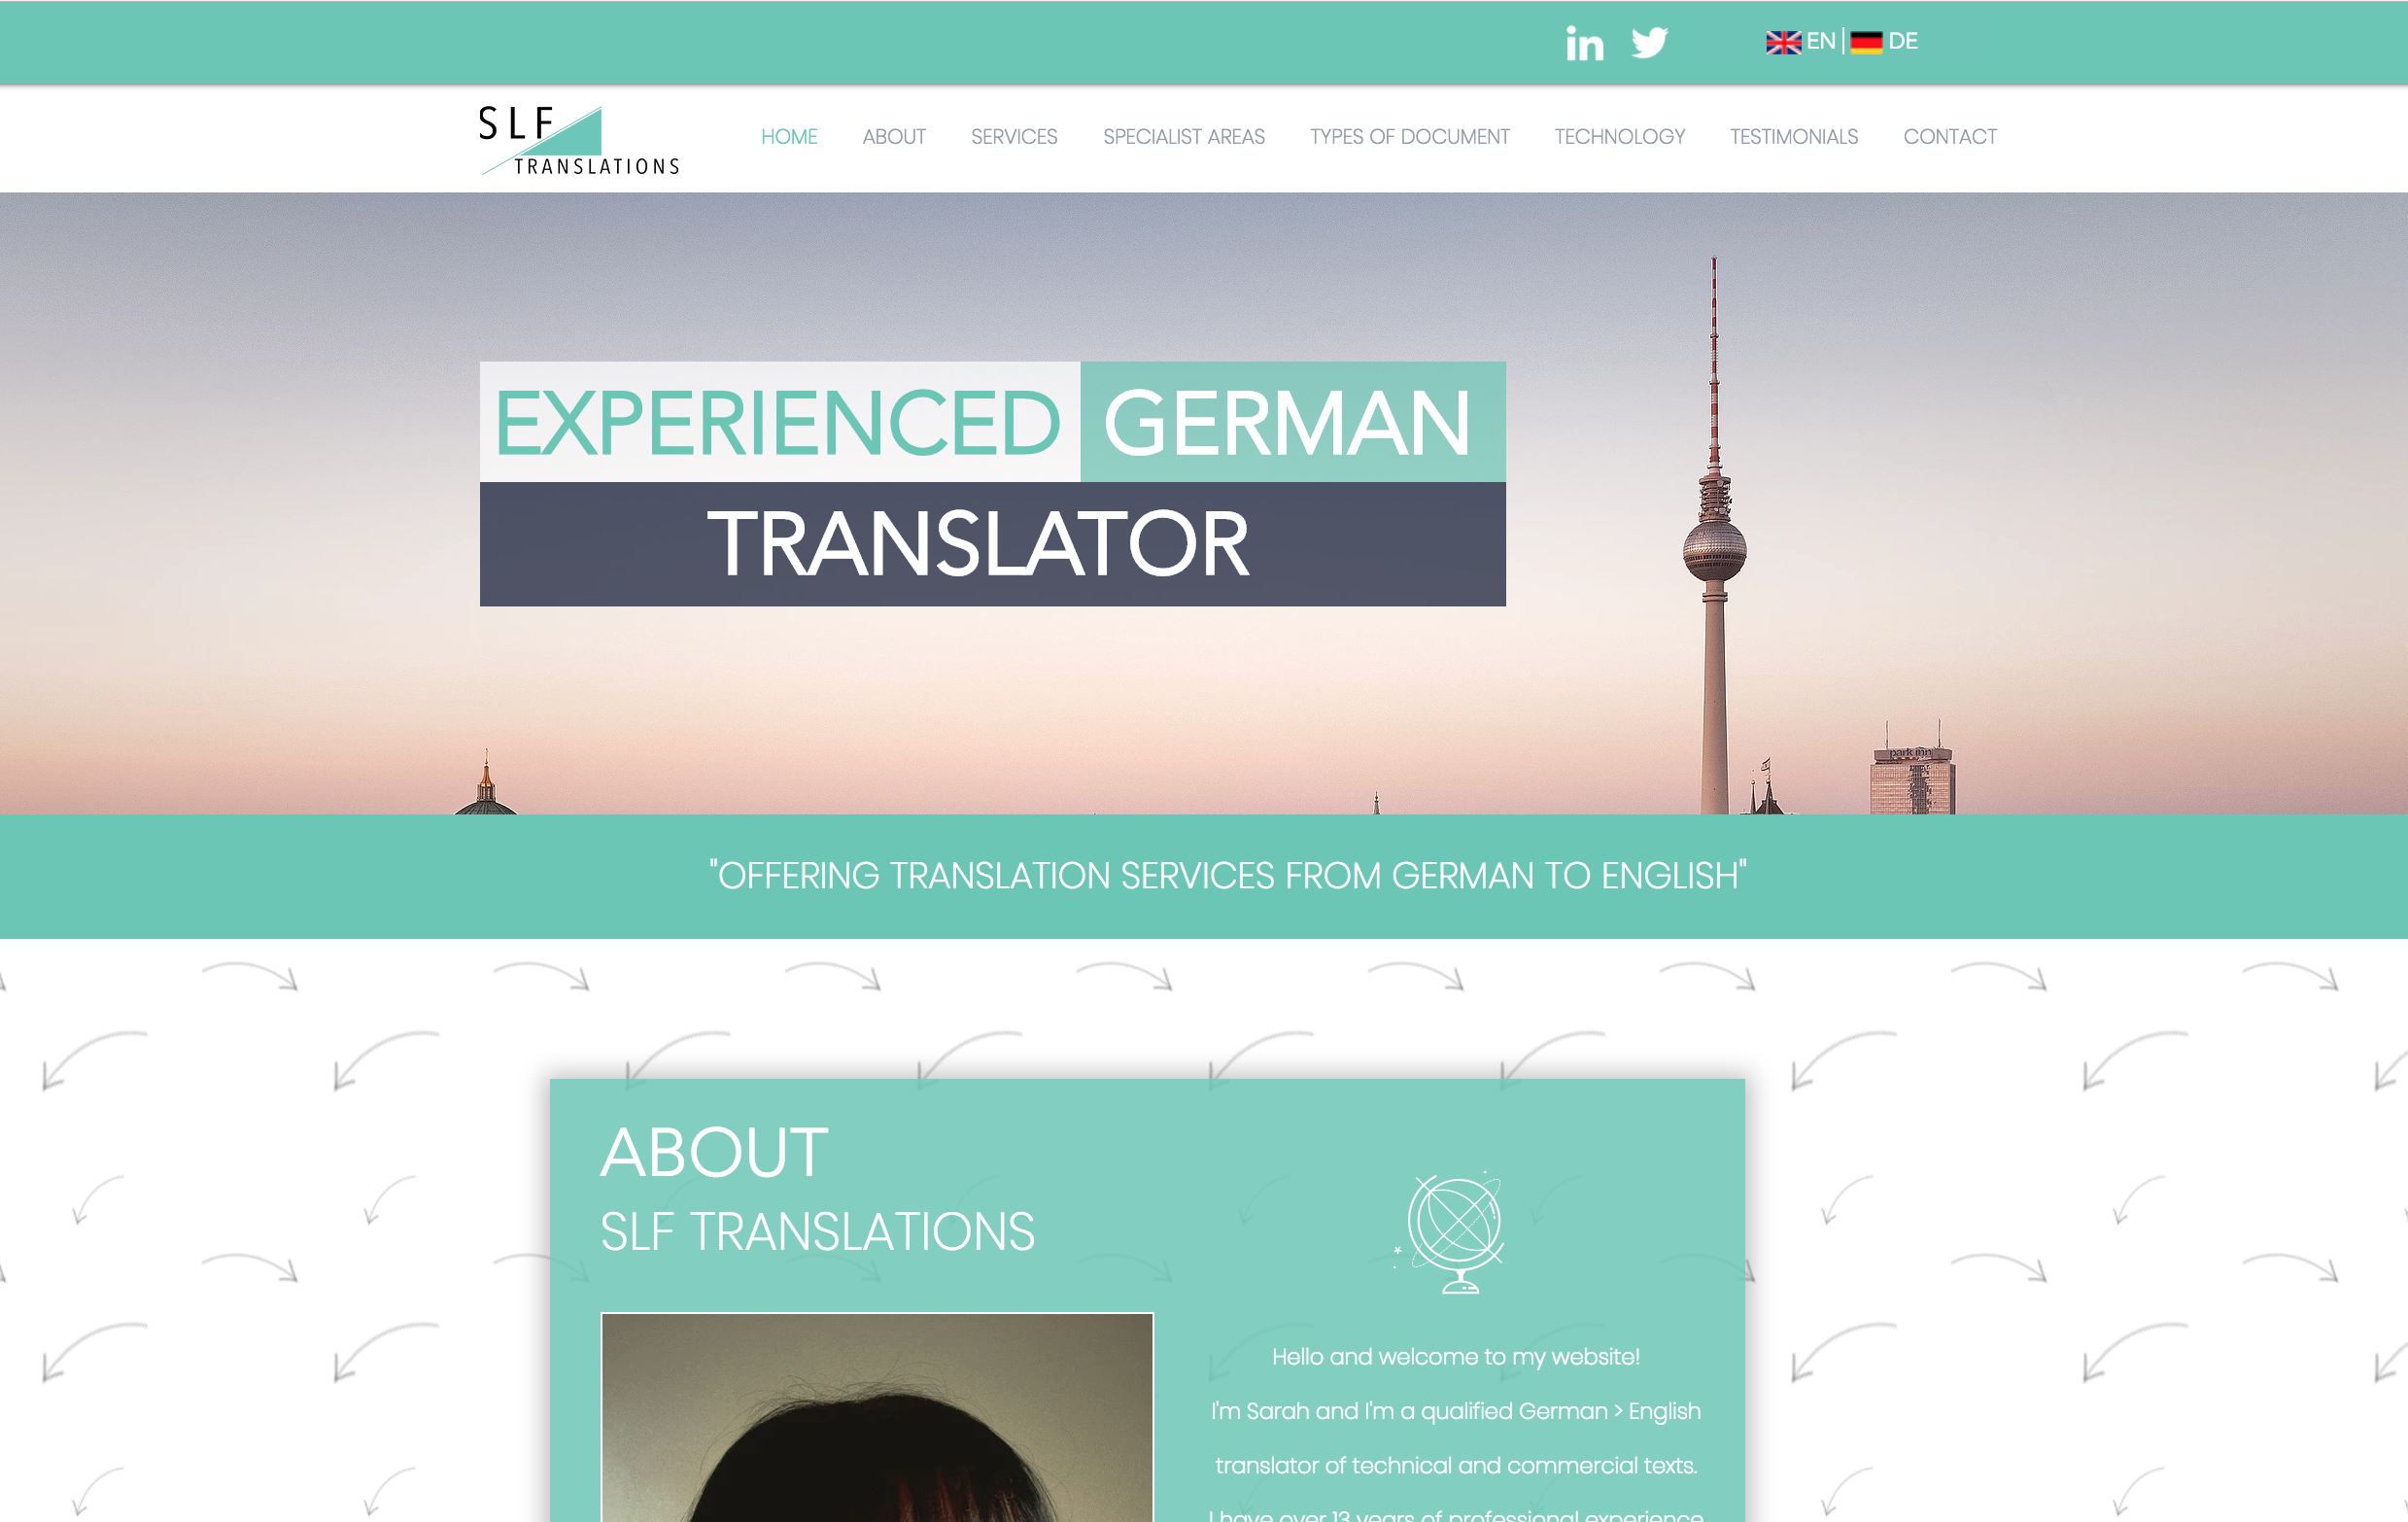 SLF Translations | German to English Translator | About